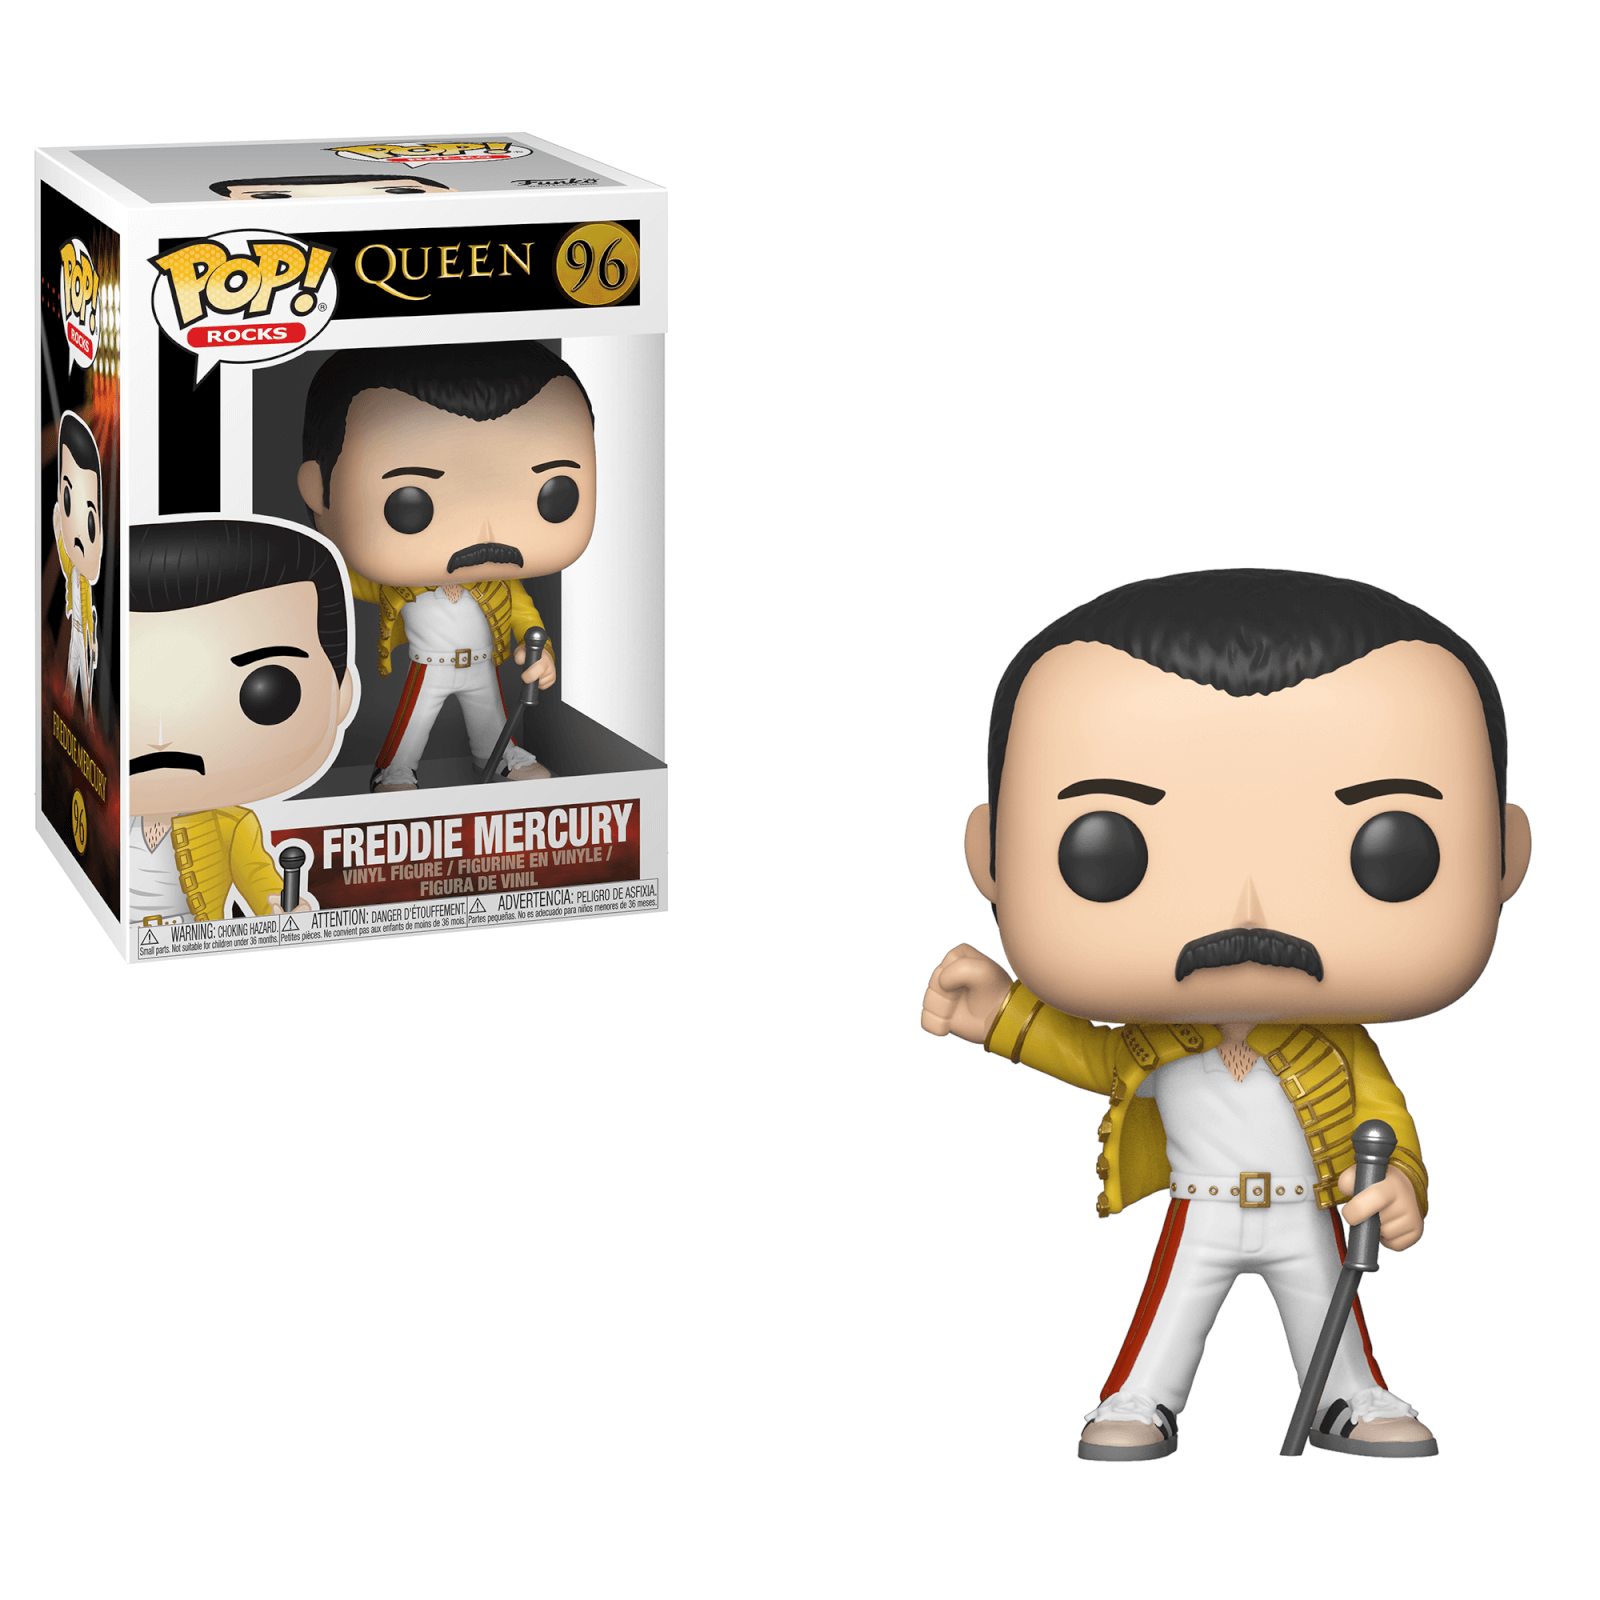 FEATURE: Pop Rocks vinyl figures 1